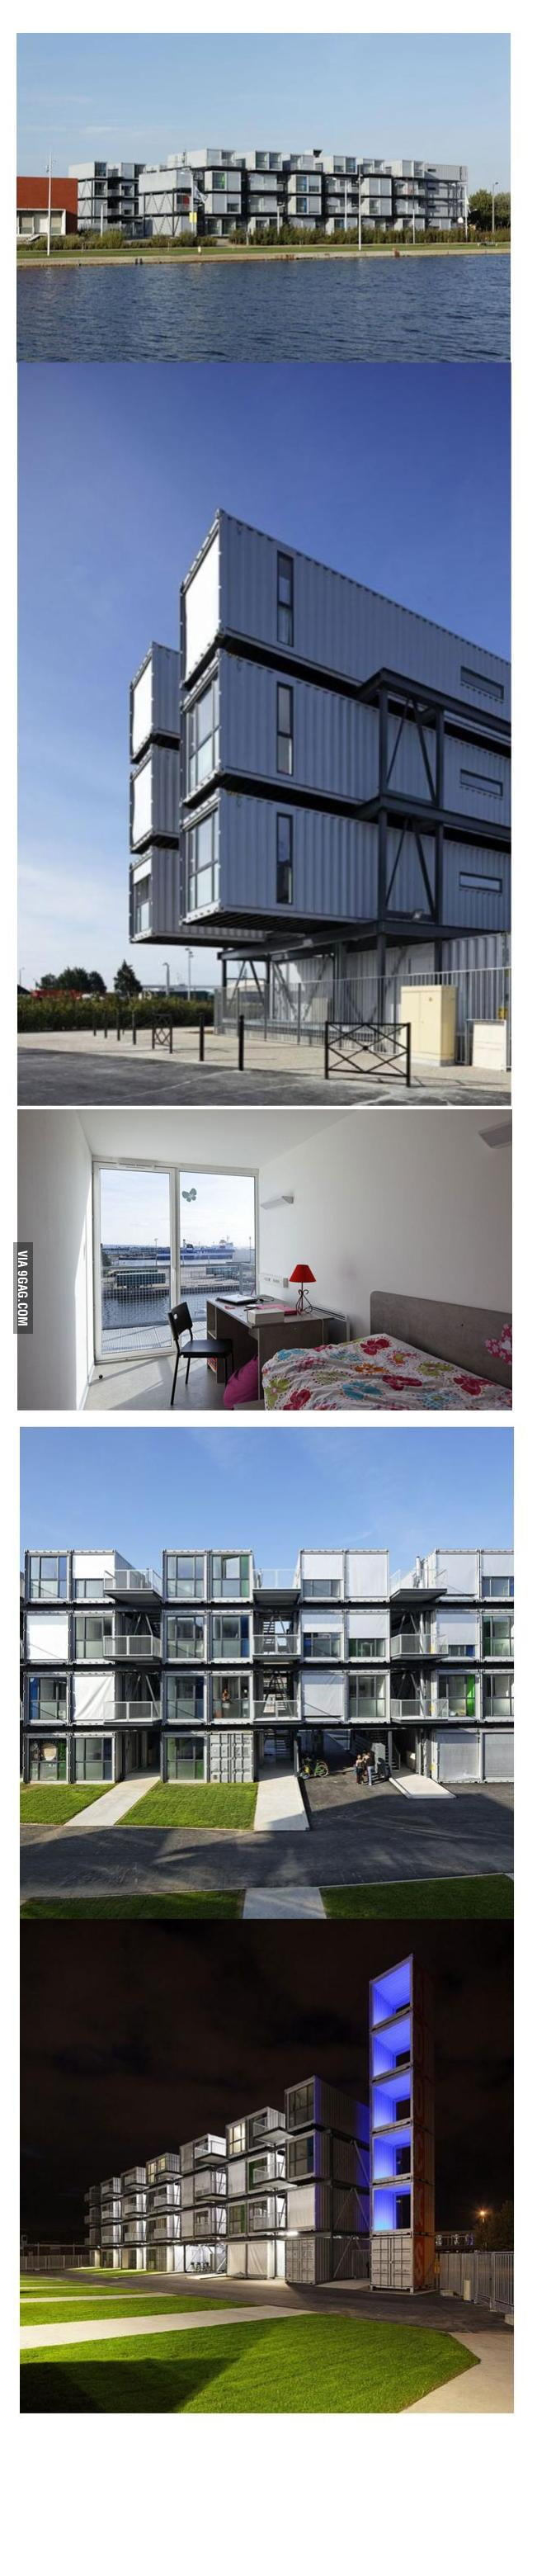 French student dorm rooms made from shipping containers for Architecture students 9gag